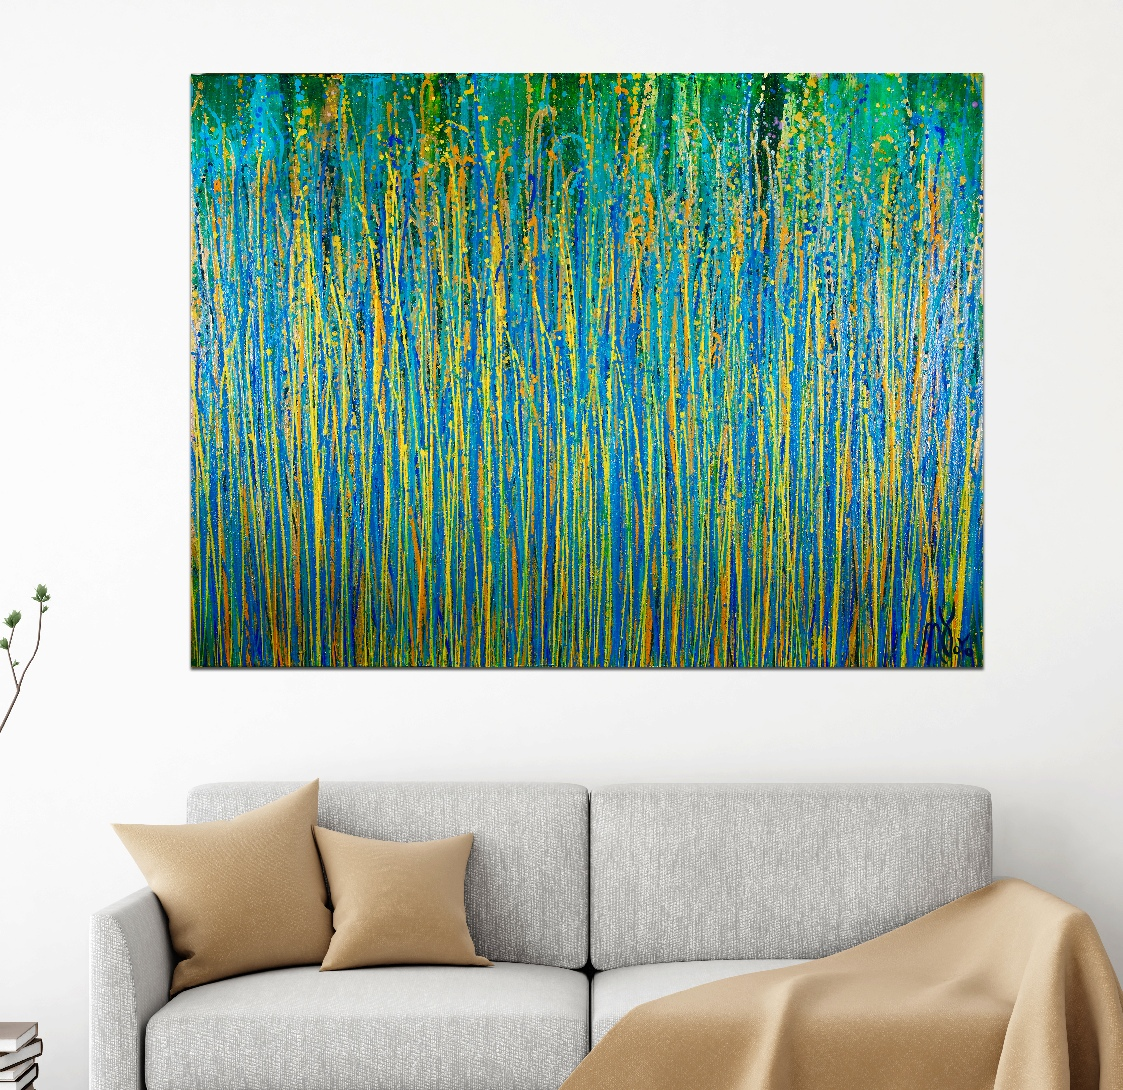 Room View - Under the morning sun - abstract painting by Nestor Toro